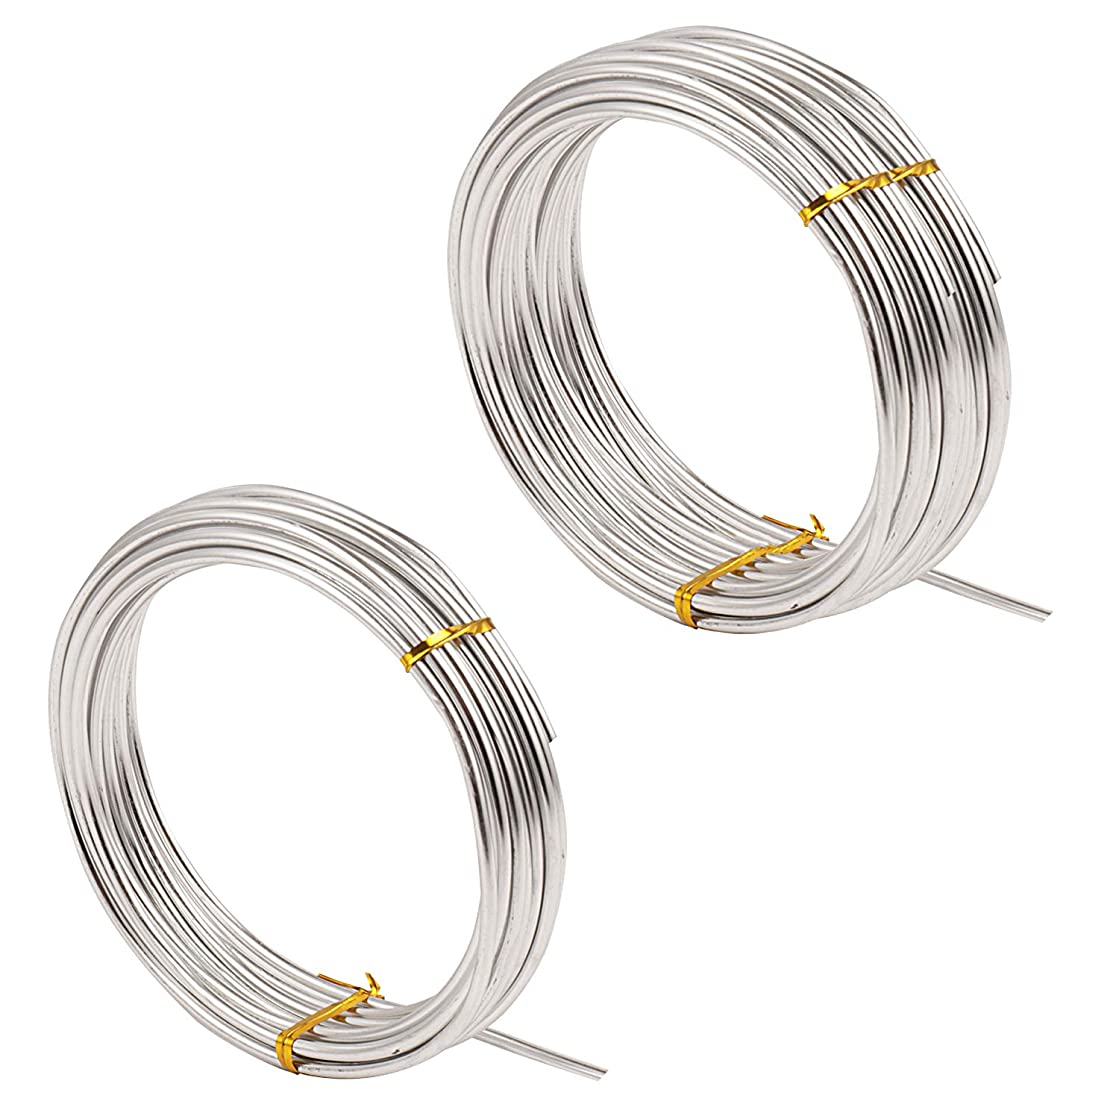 SUBANG 49.2 Feet Silver Aluminum Wire Bendable Metal Wire for DIY Sculpture and Crafts,3mm Thickness